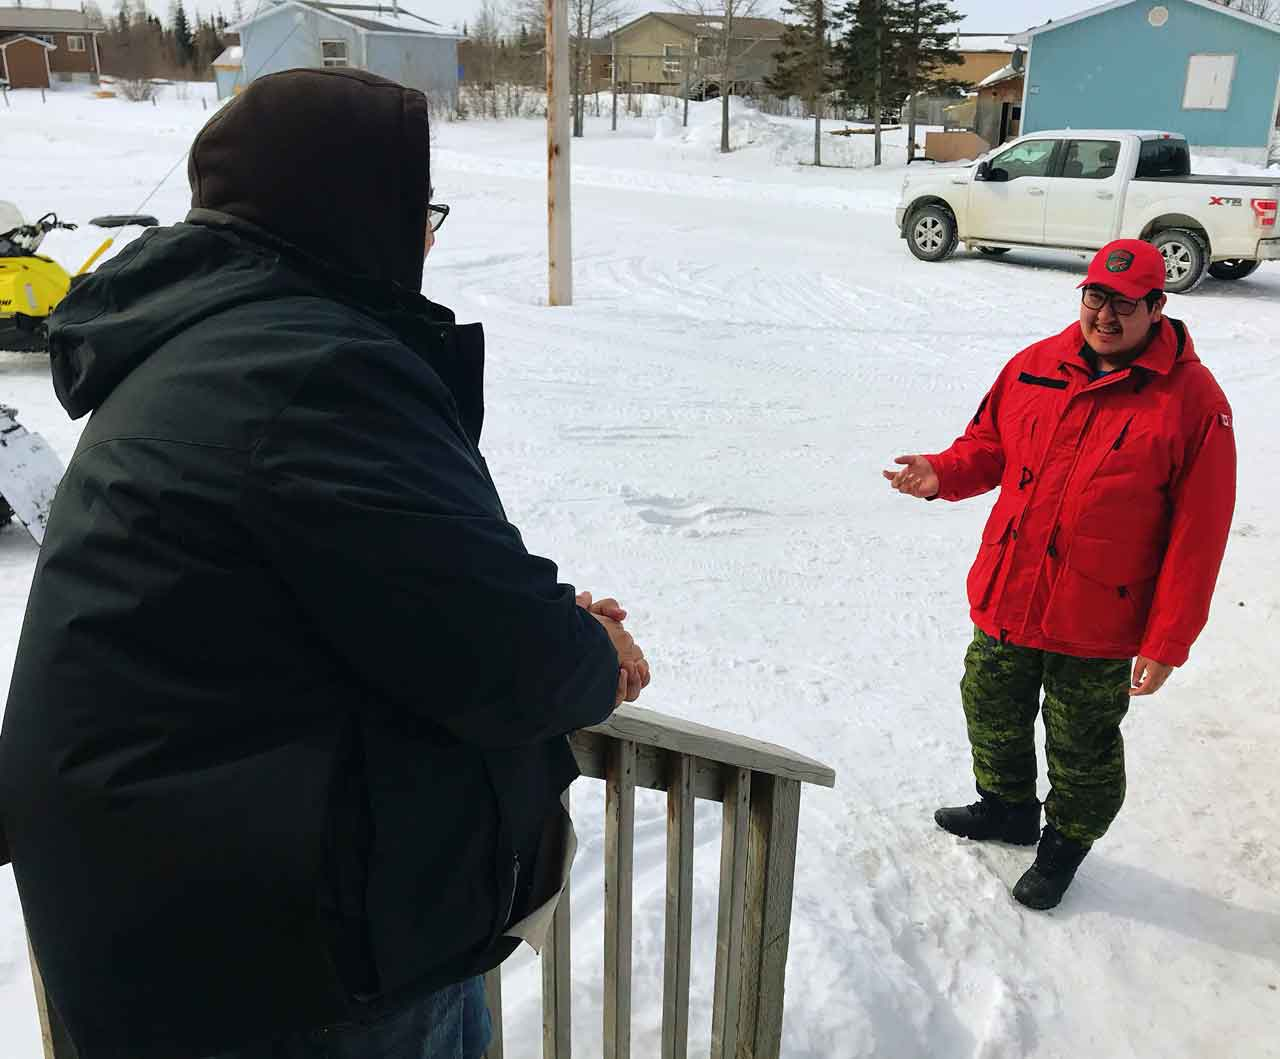 Ranger Joseph Hunter conducts a wellness check with a resident of Peawanuck. Photo credit: Master Corporal Jason Hunter, Canadian Rangers